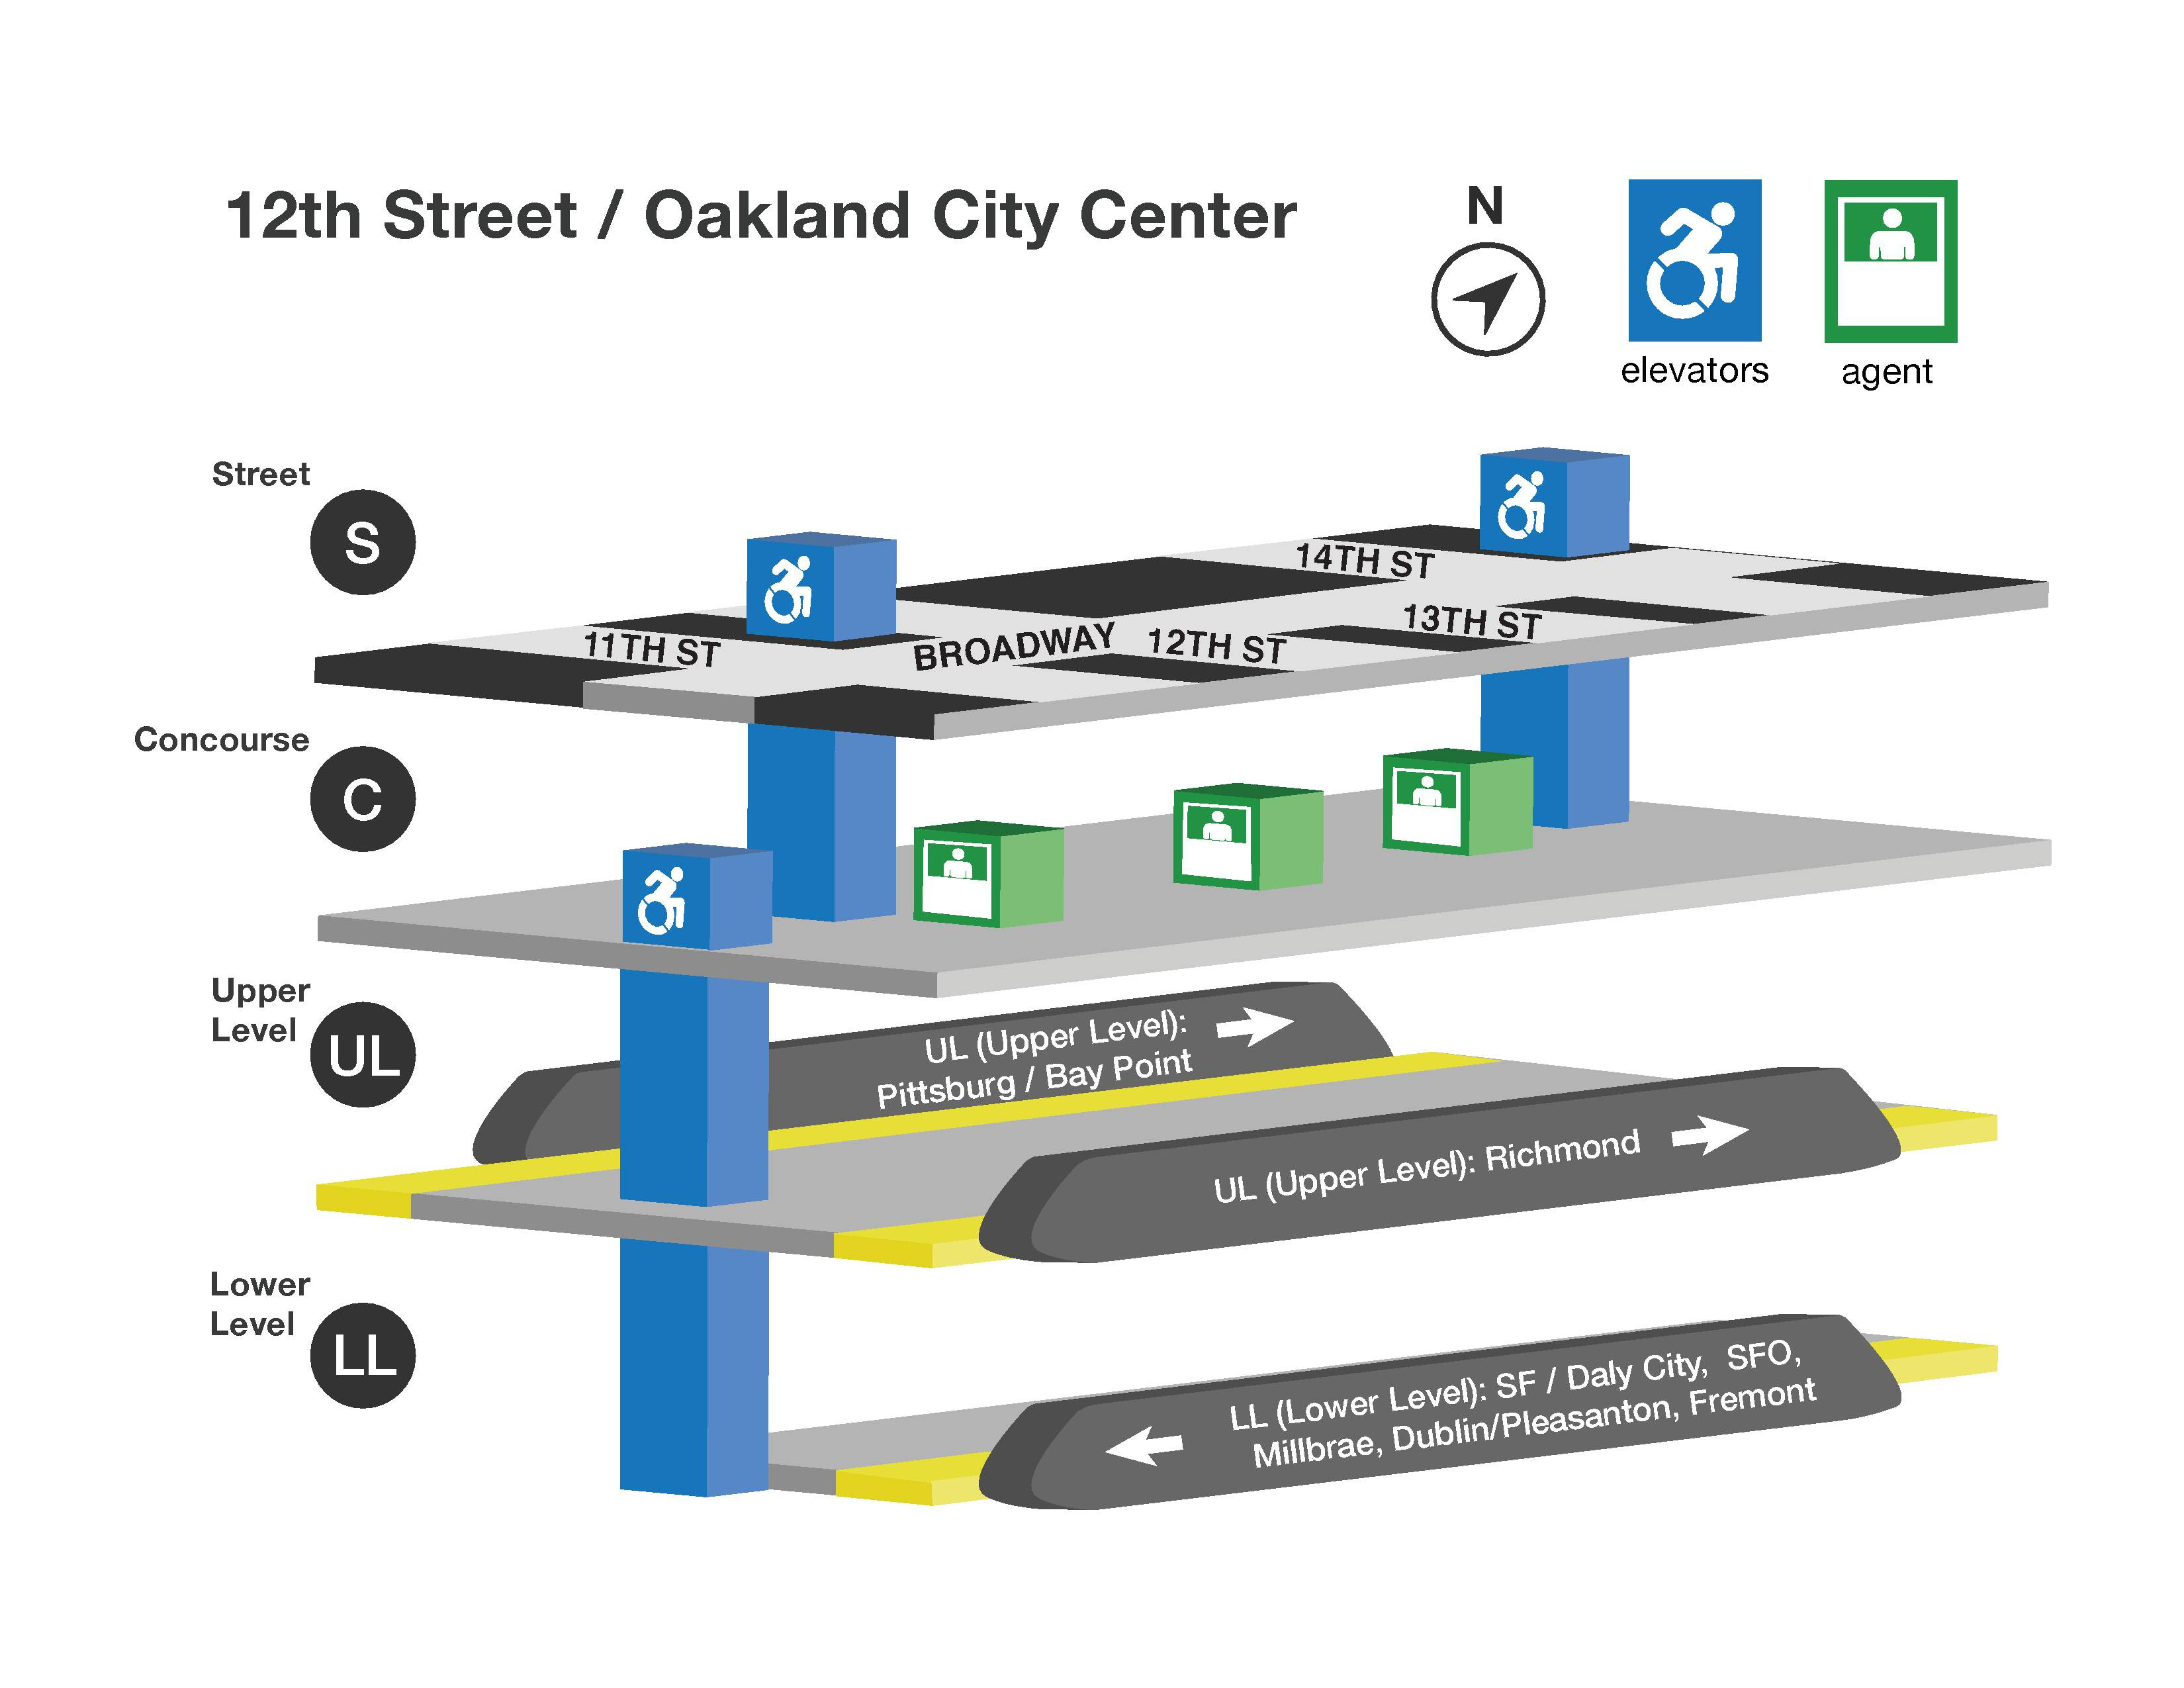 bart elevator locations and accessible path for 12th st  oakland city center station